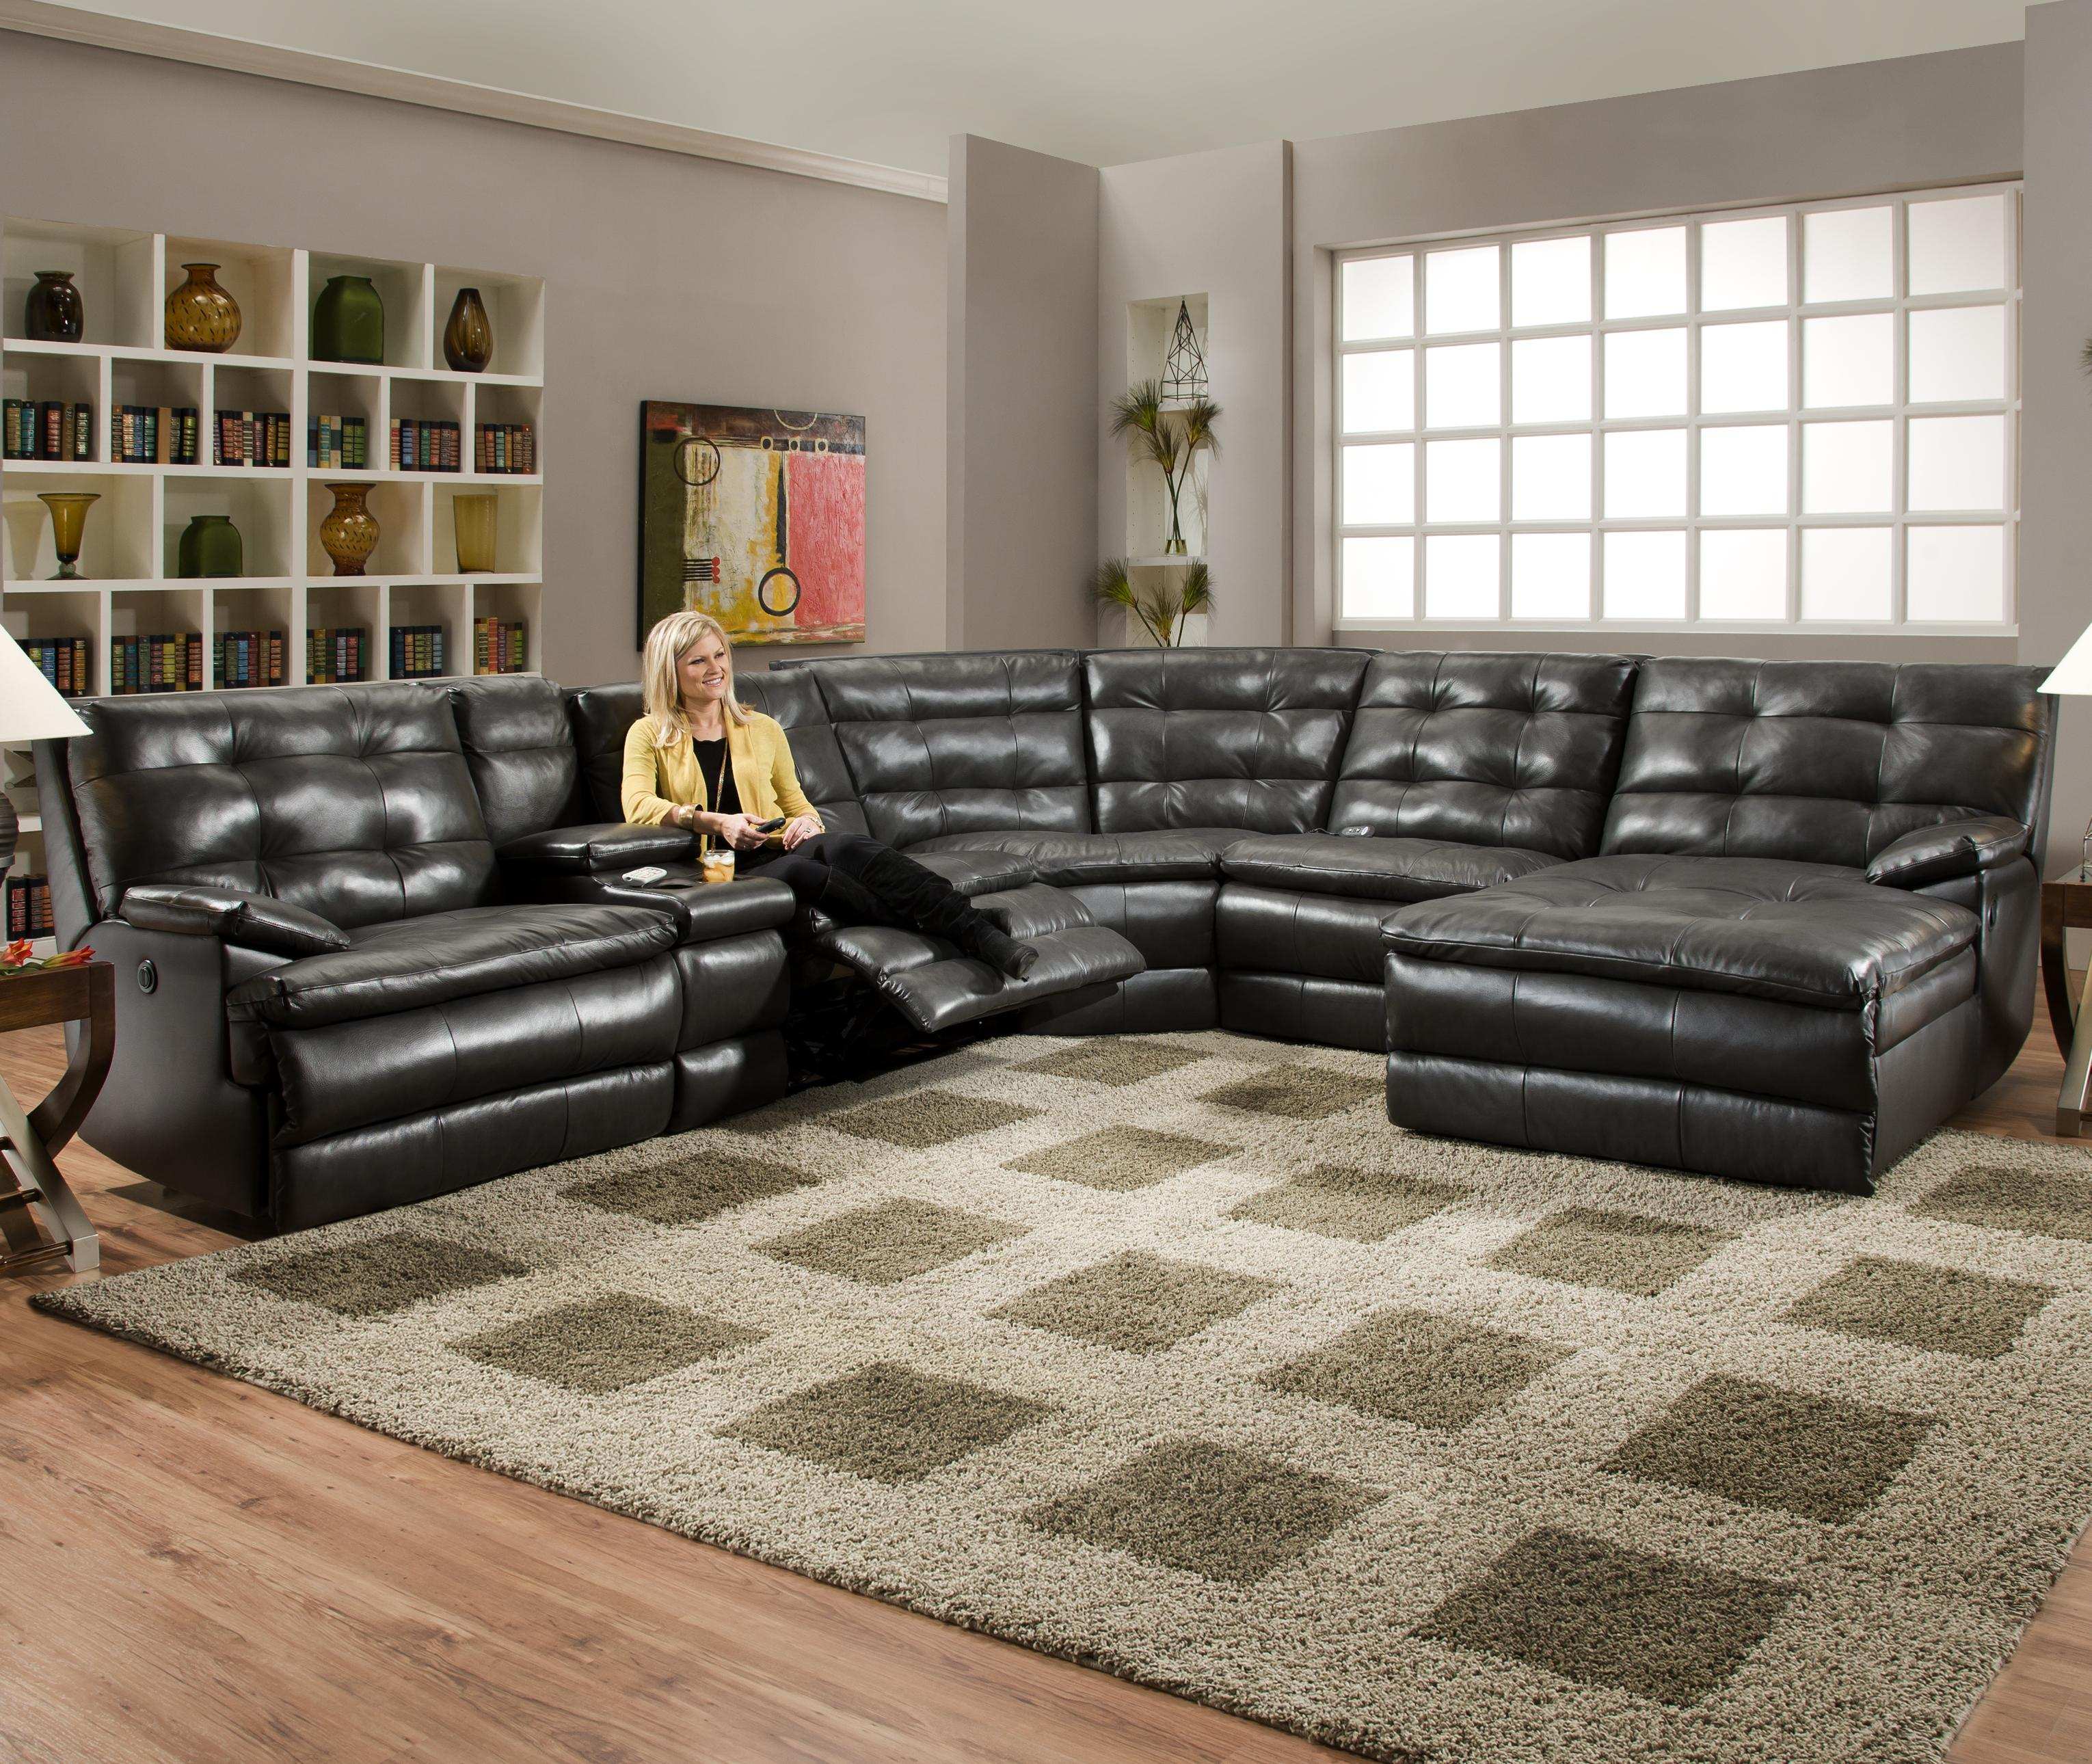 Contemporary Latest trend of Large Sectional Sofas With Recliners 30 With Additional  Genuine large sectional sofas with recliners